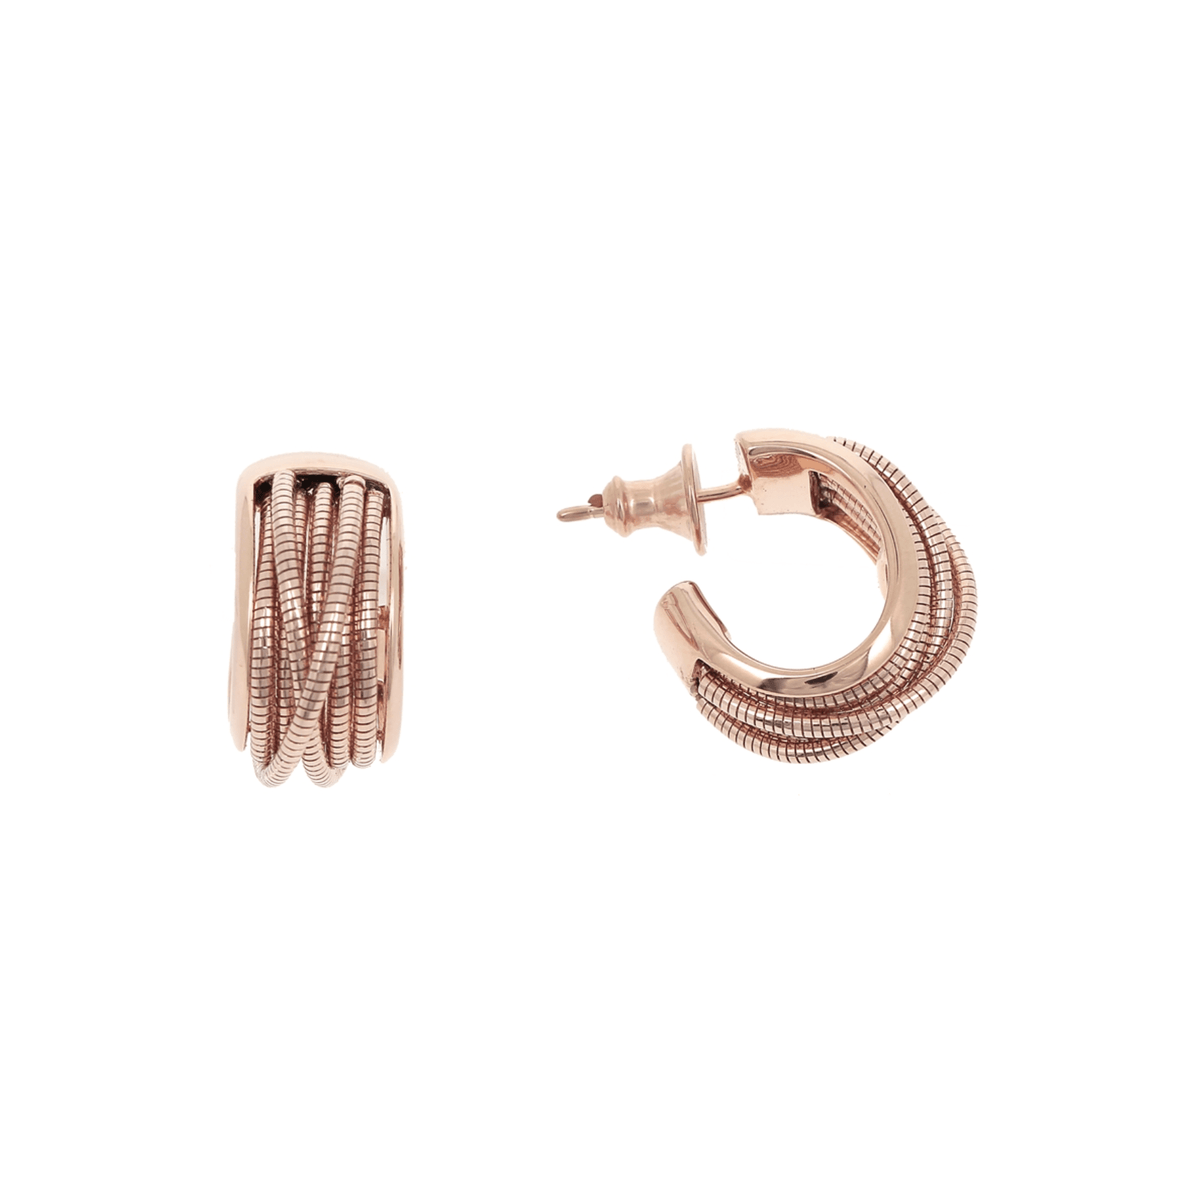 DNA SPRING HUGGIE EARRINGS - ROSE GOLD